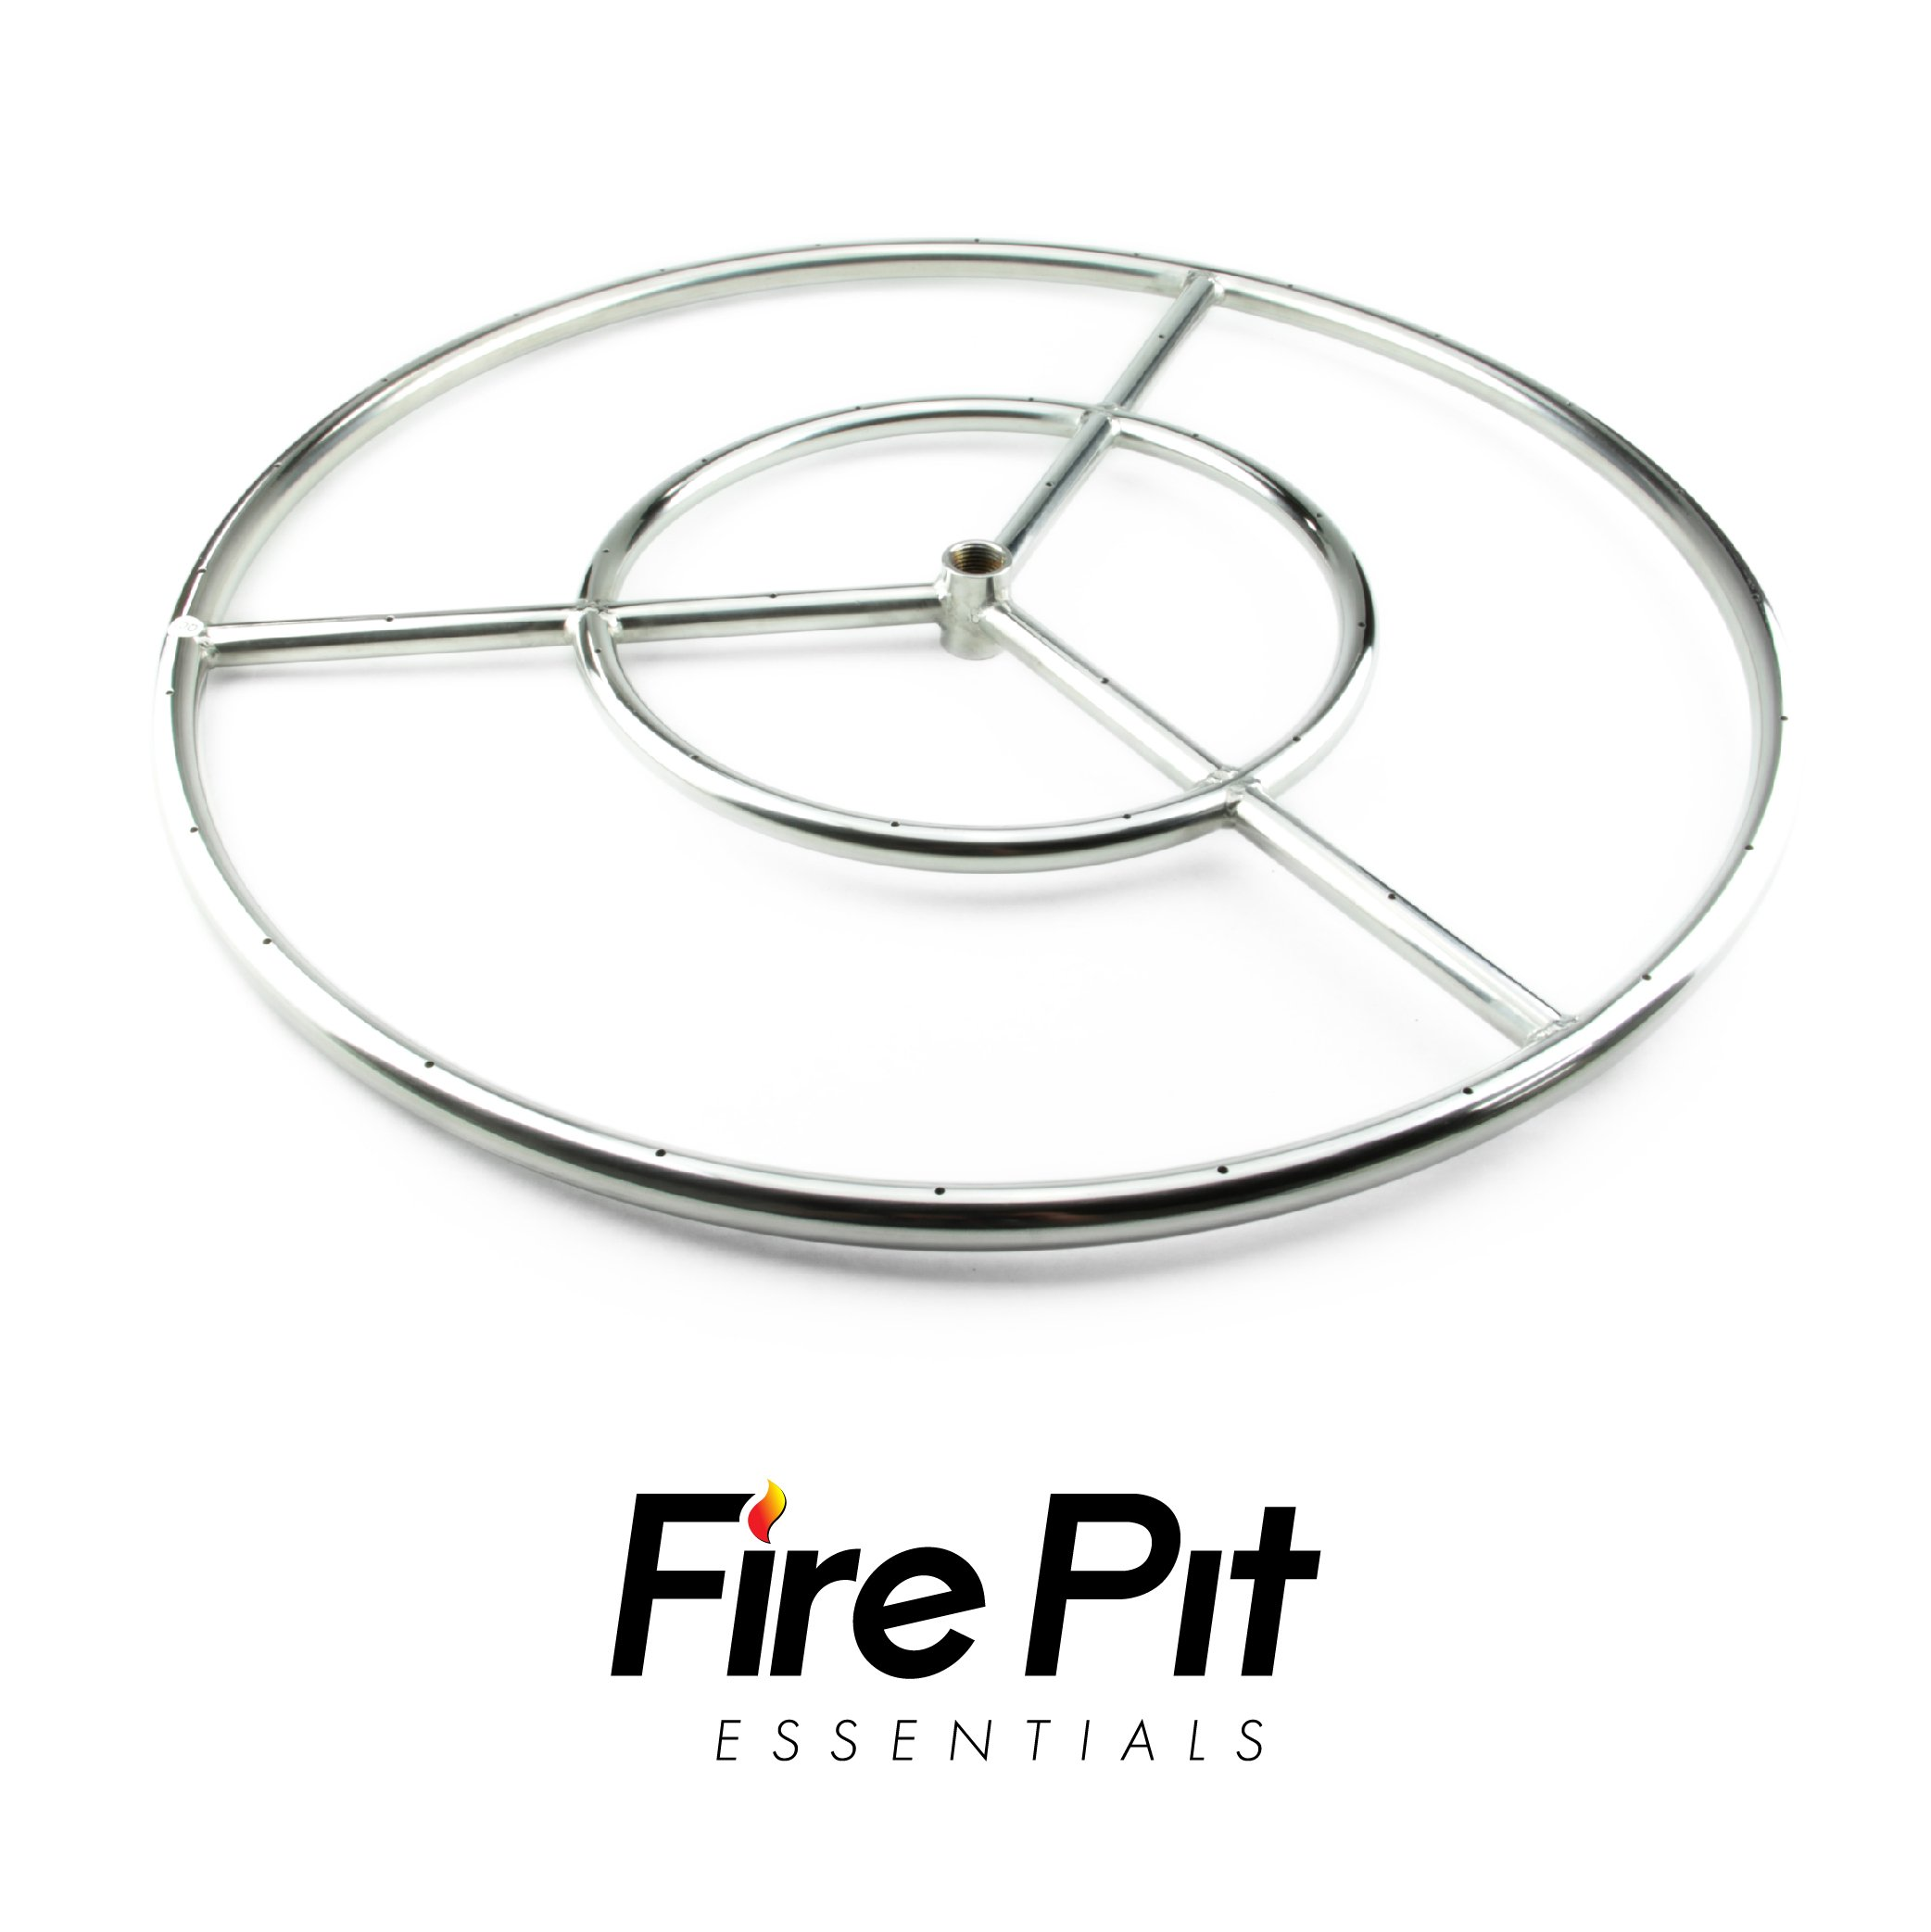 Stainless Steel Fire Ring for Fire Pit Fire Burner Ring, 24-inch Stainless Steel